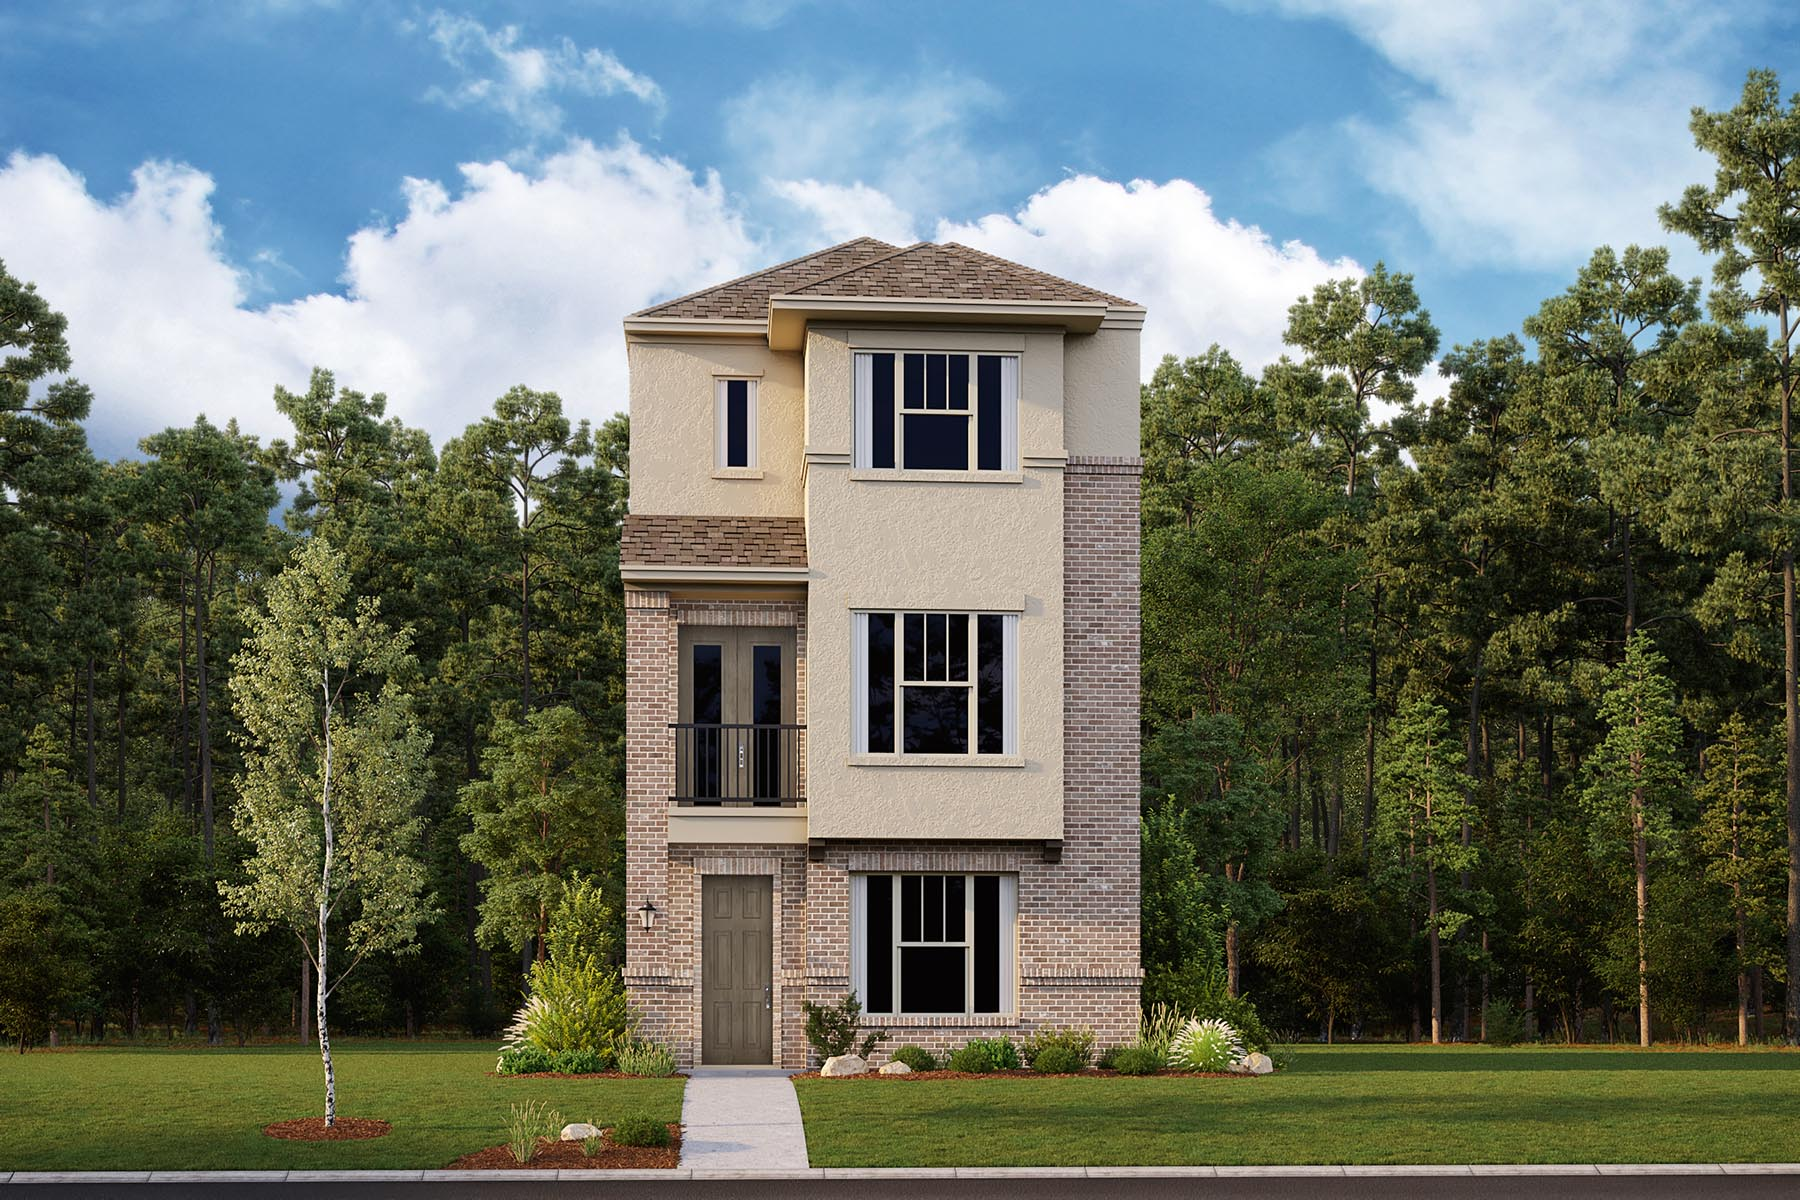 Mulberry Plan DAL_Mulberry_ElevationC_1800x1200 at Iron Horse Village in Mesquite Texas by Mattamy Homes